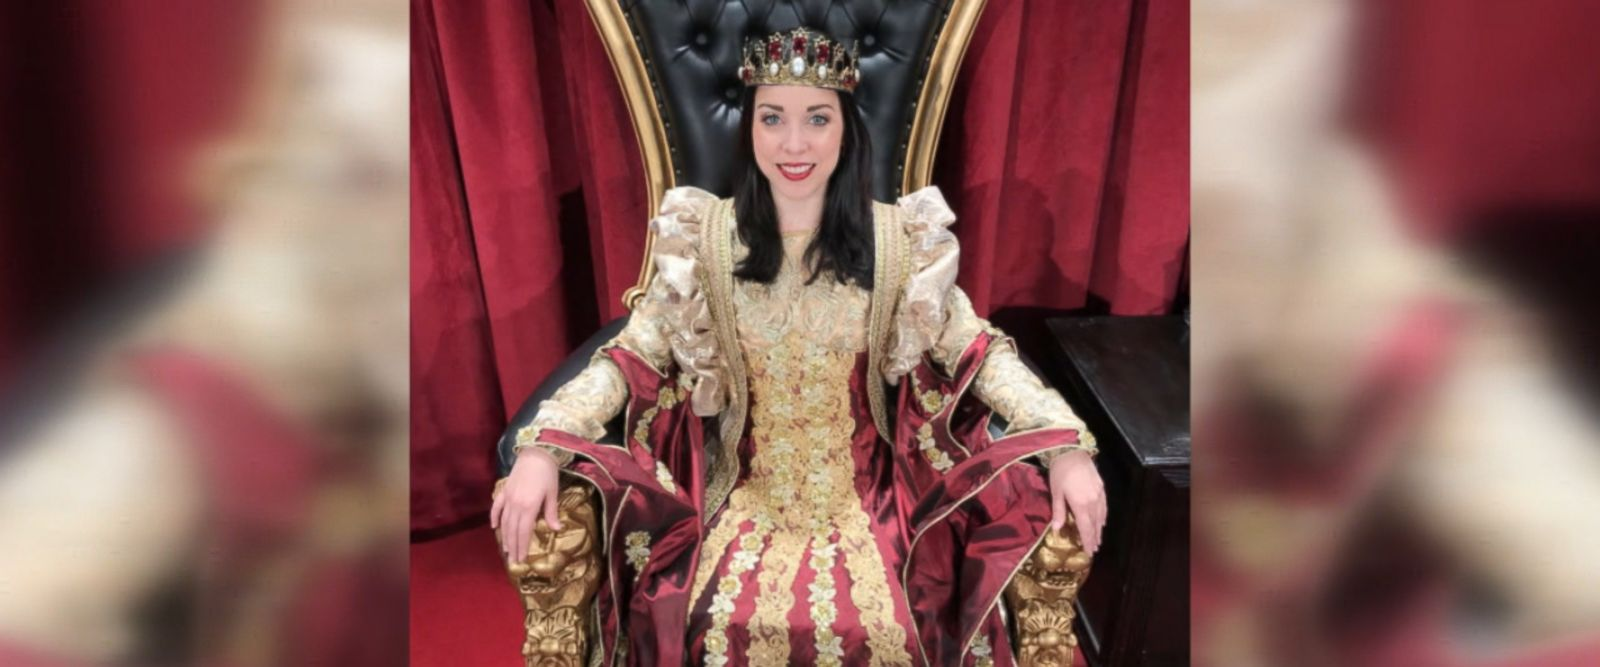 The Medieval Times Dinner and Tournament will now feature a matriarch as the lead role of the queen.